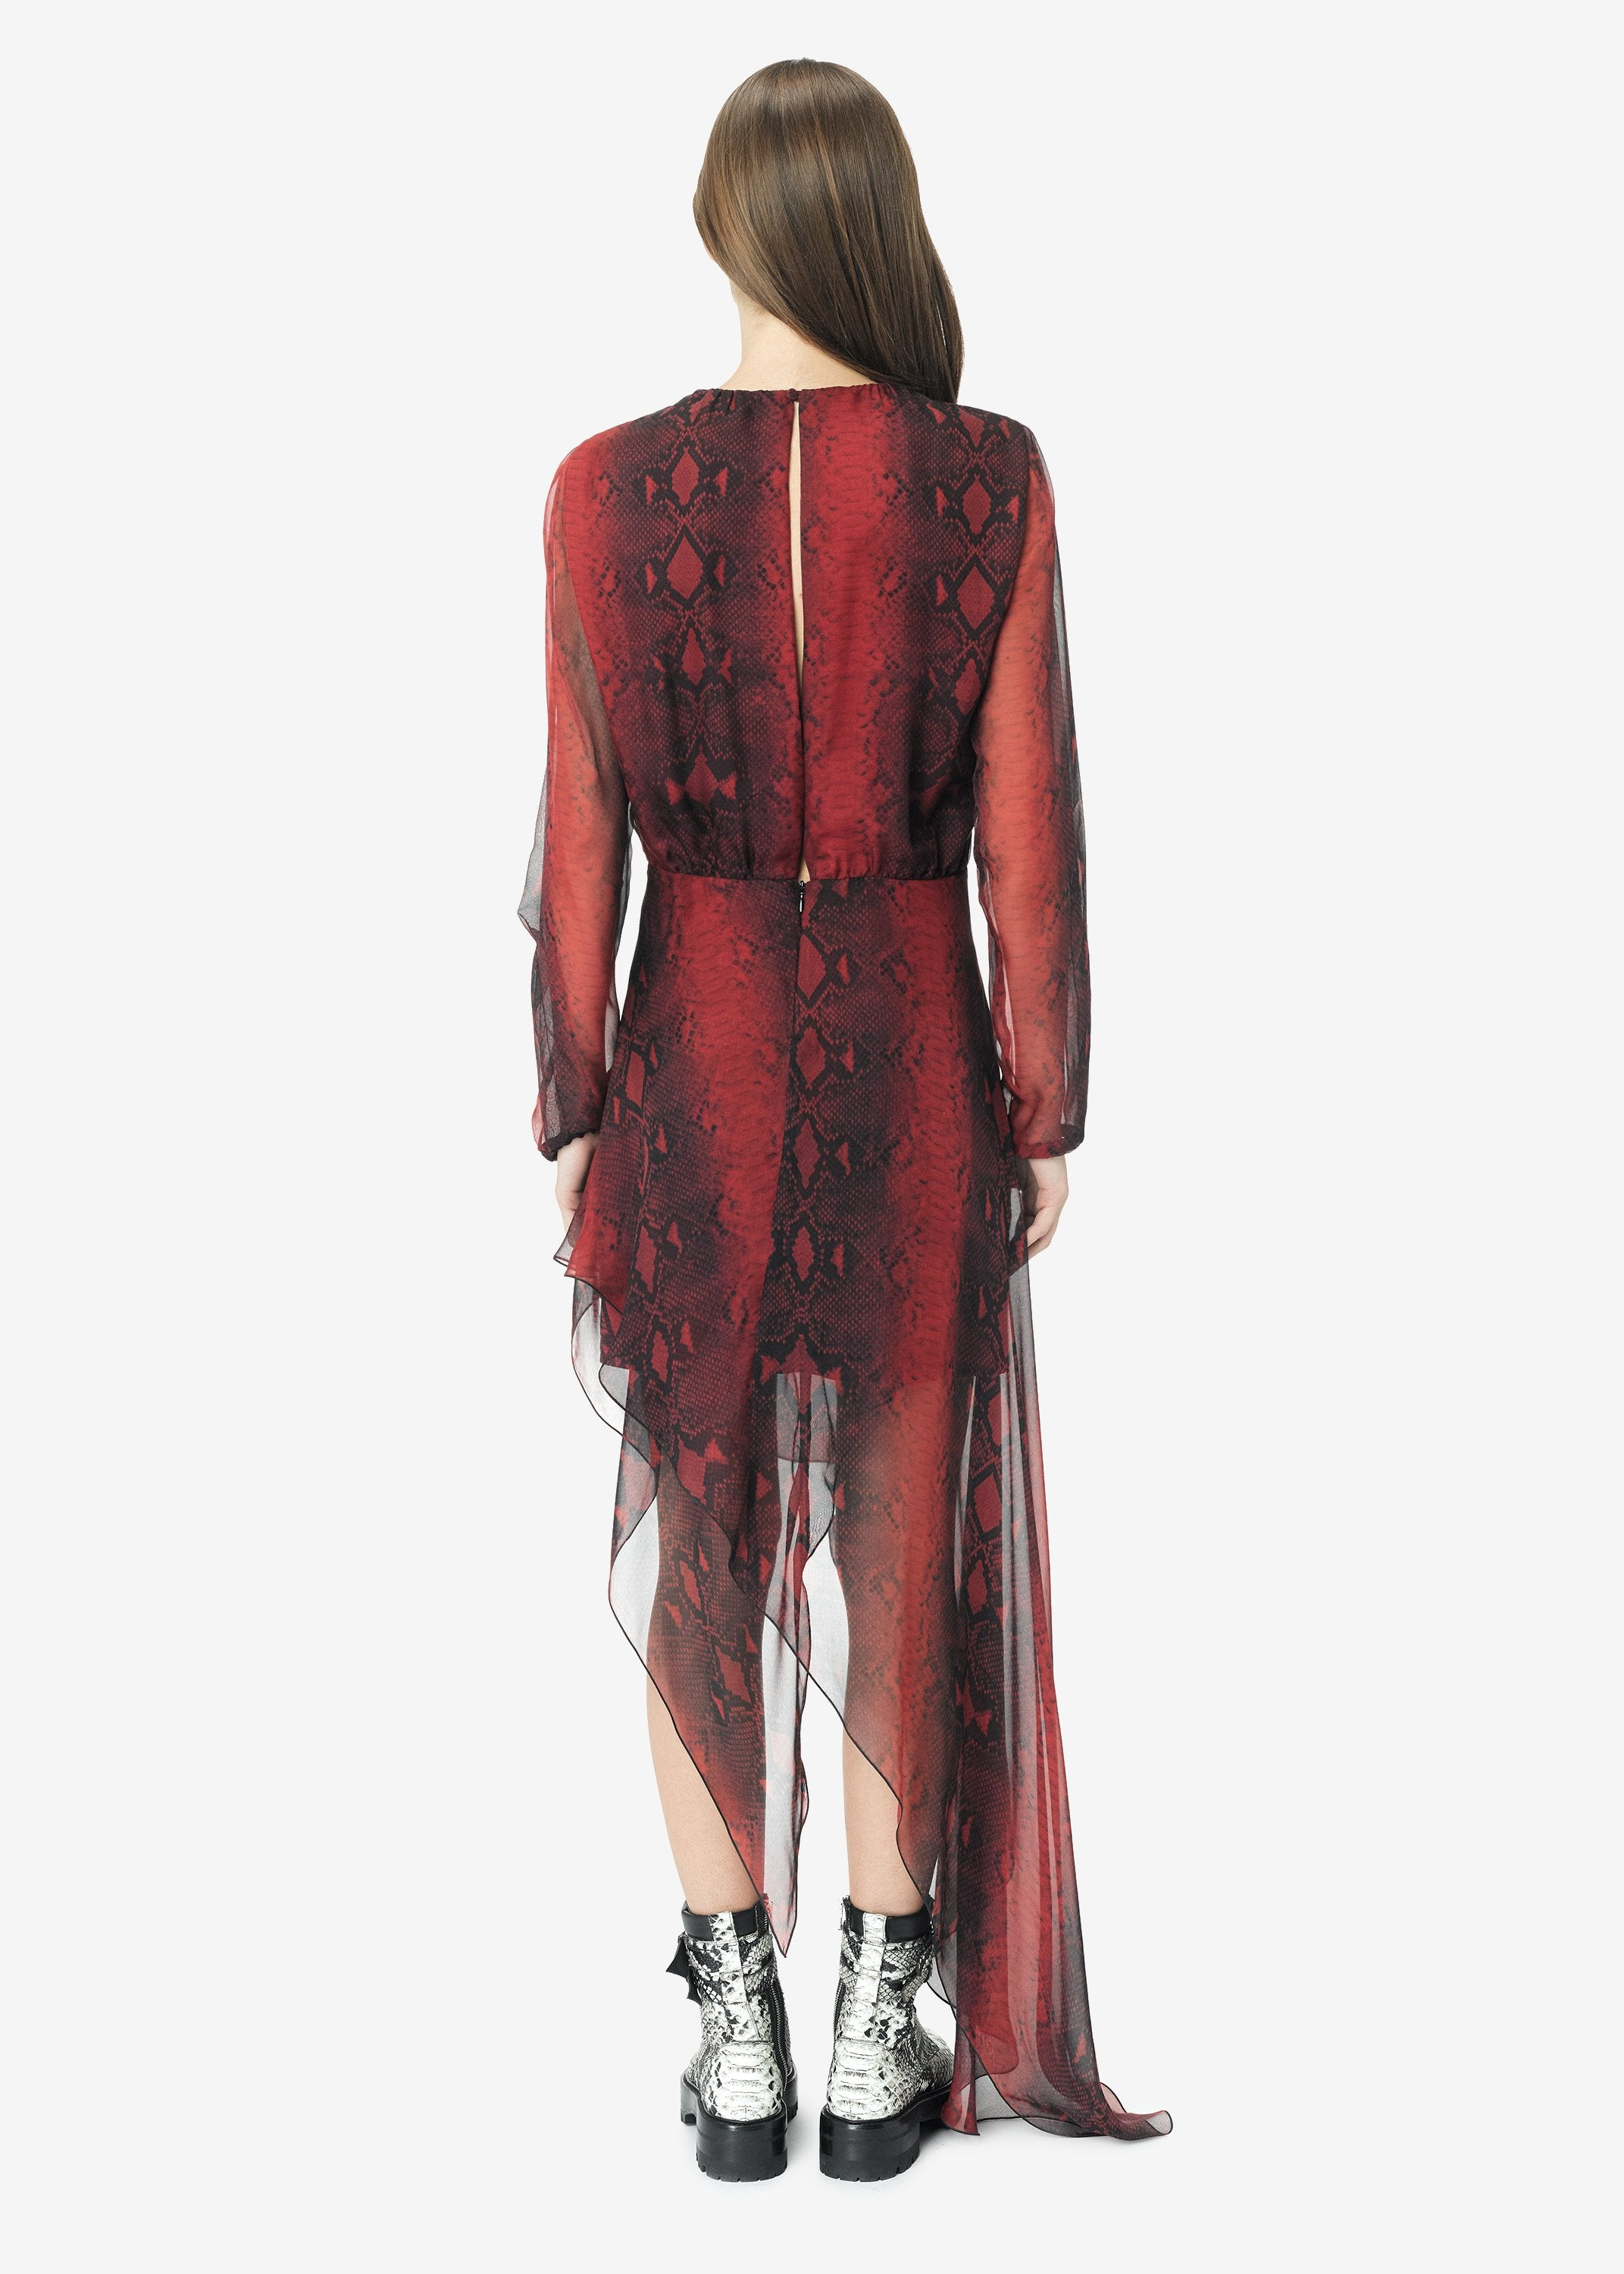 printed-python-assymetric-long-sleeve-dress-burgundy-image-7